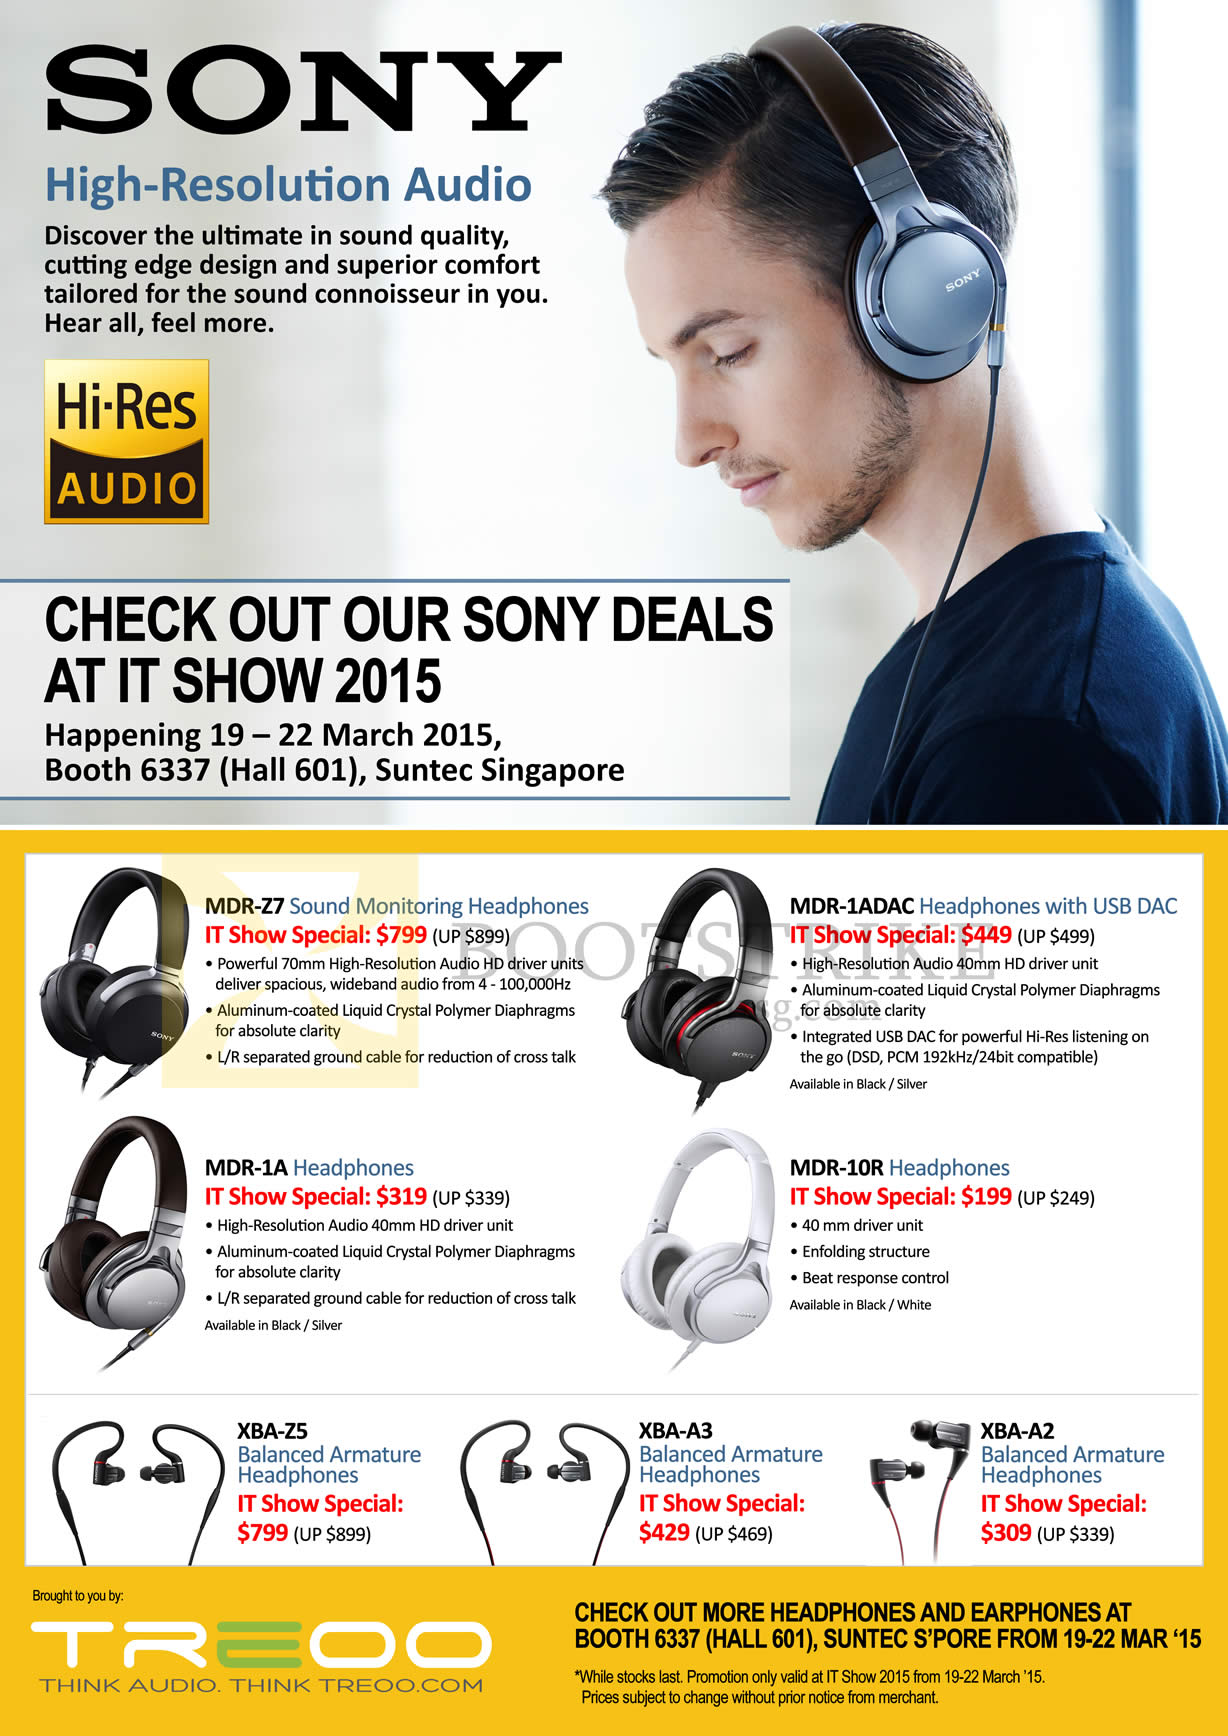 IT SHOW 2015 price list image brochure of Red Fusion Treoo Sony Headphones, Earphones, MDR-27, 1A, 1ADAC, 10R, XBA-Z5, A3, A2